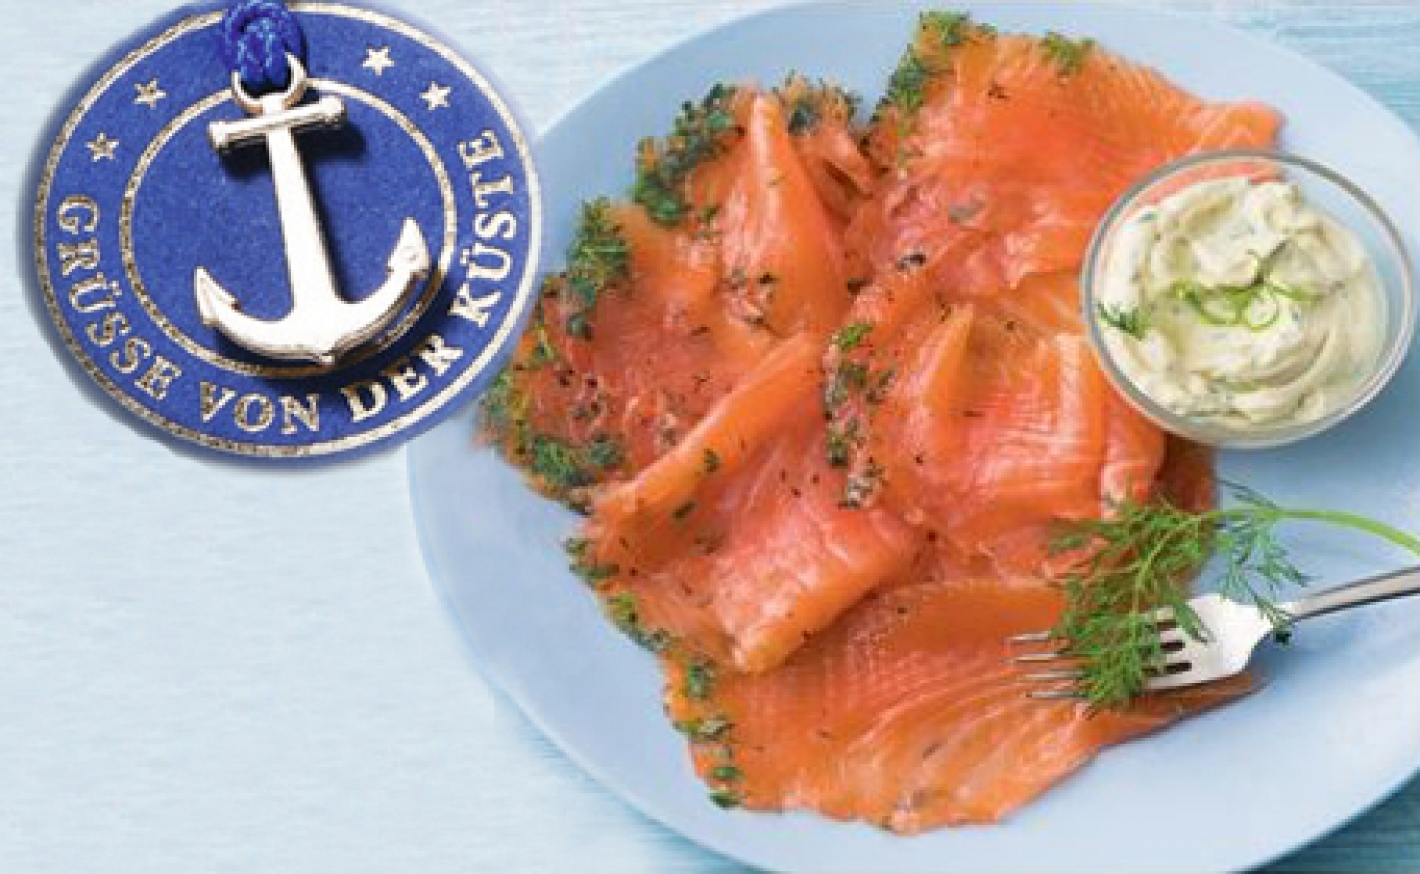 Graved Lachs mit Dill-Senf-Soße